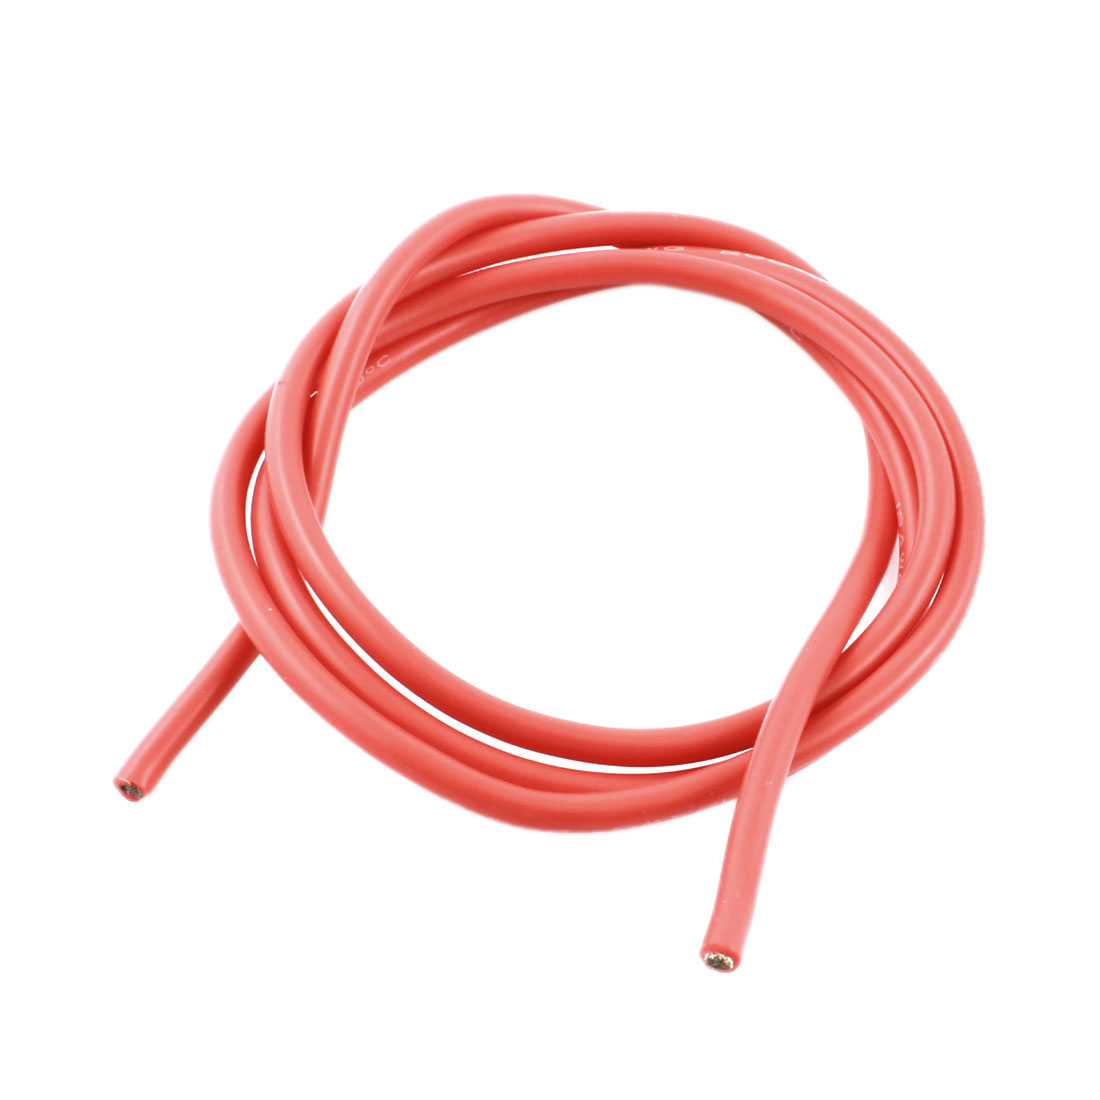 1 Meter/3.3ft 12AWG 200C Flexible Heat Resistance Silicone High Temp Wire Cable Red